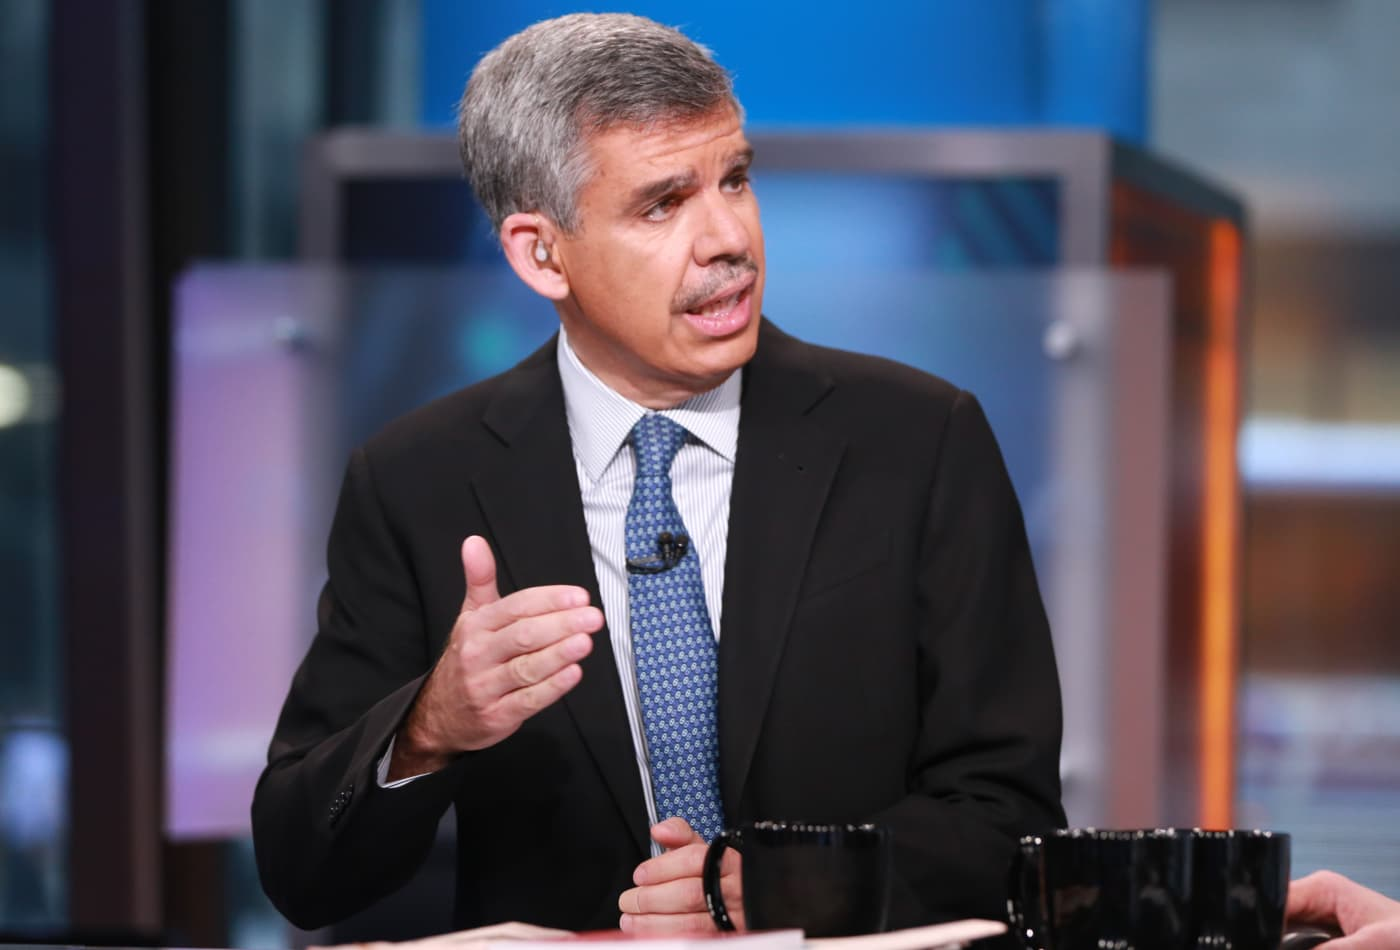 El-Erian: 'We're not in an all clear' for stock index buying, but the sell 'everything' moment has passed